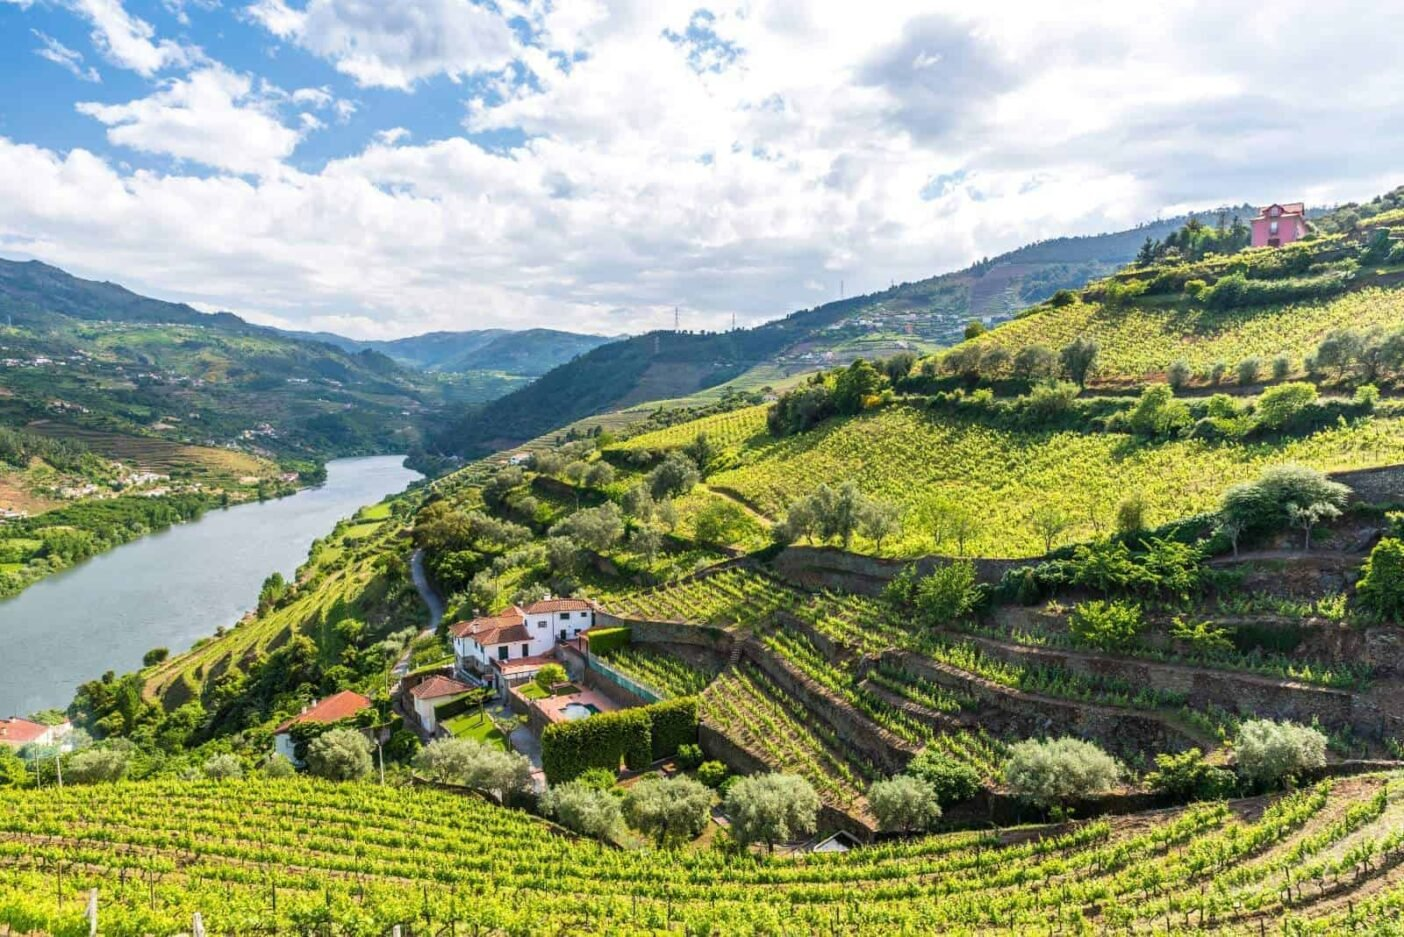 A river valley with green vineyards on both sides in Portugal